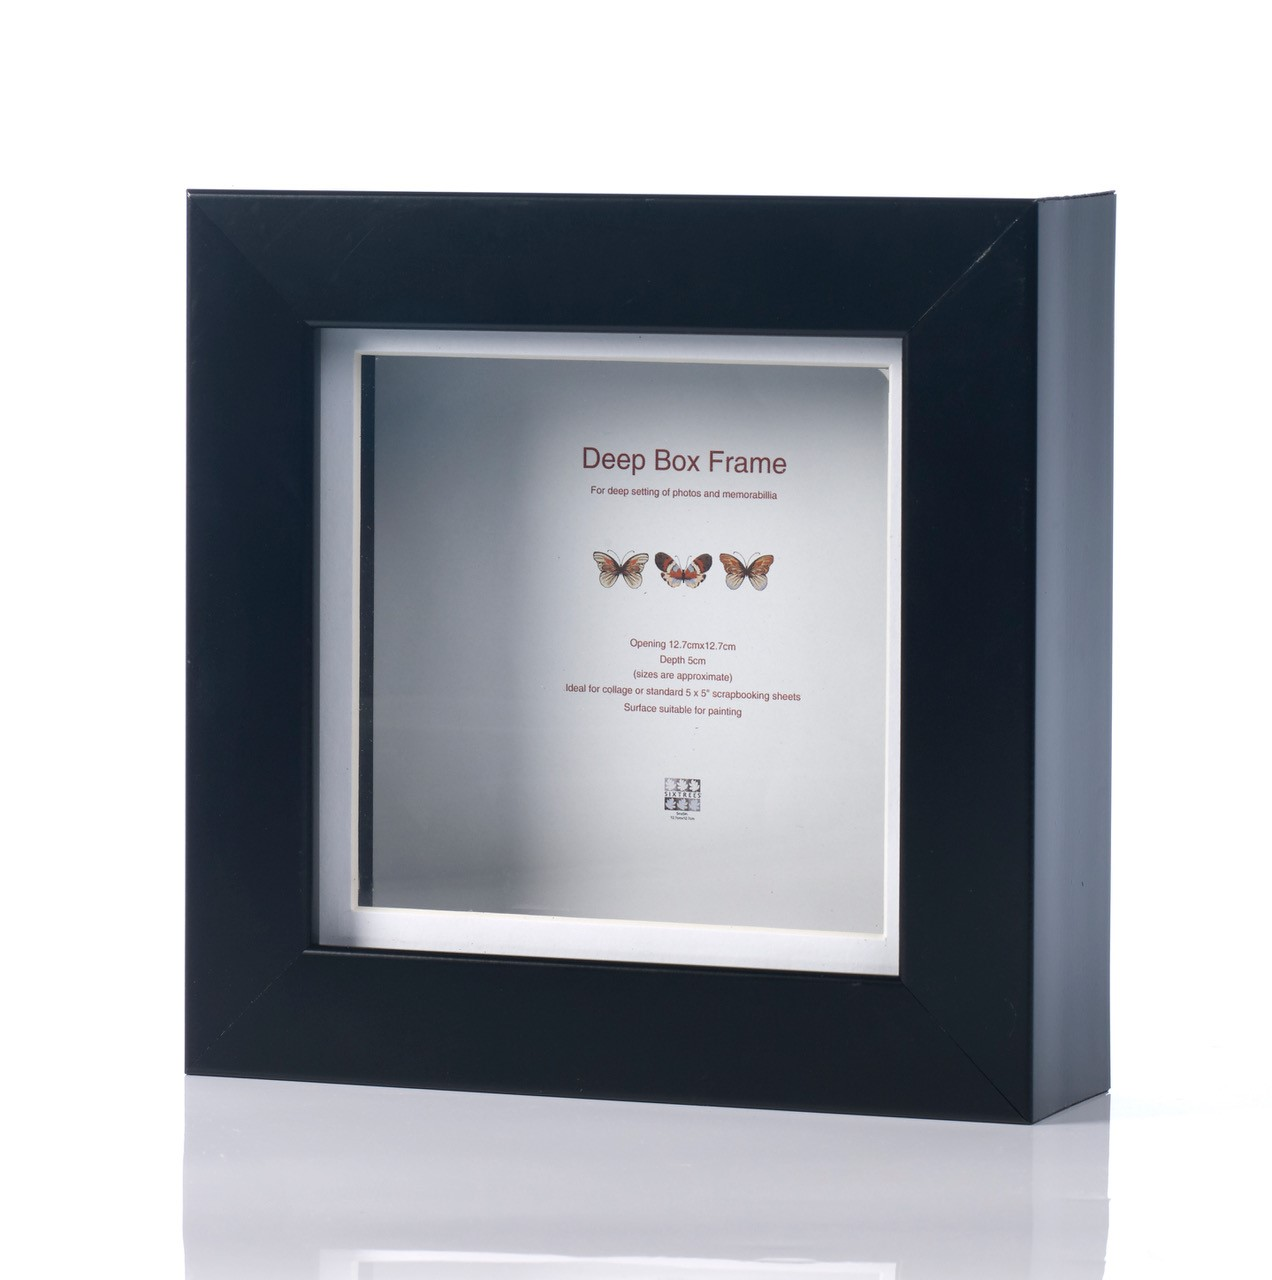 Stupendous Sixtrees Black Frame Cooper Box Sixtrees Black Frame Cooper Box Photo Frames Photo Black Frames Amazon Black Frames Set photos Black Picture Frames